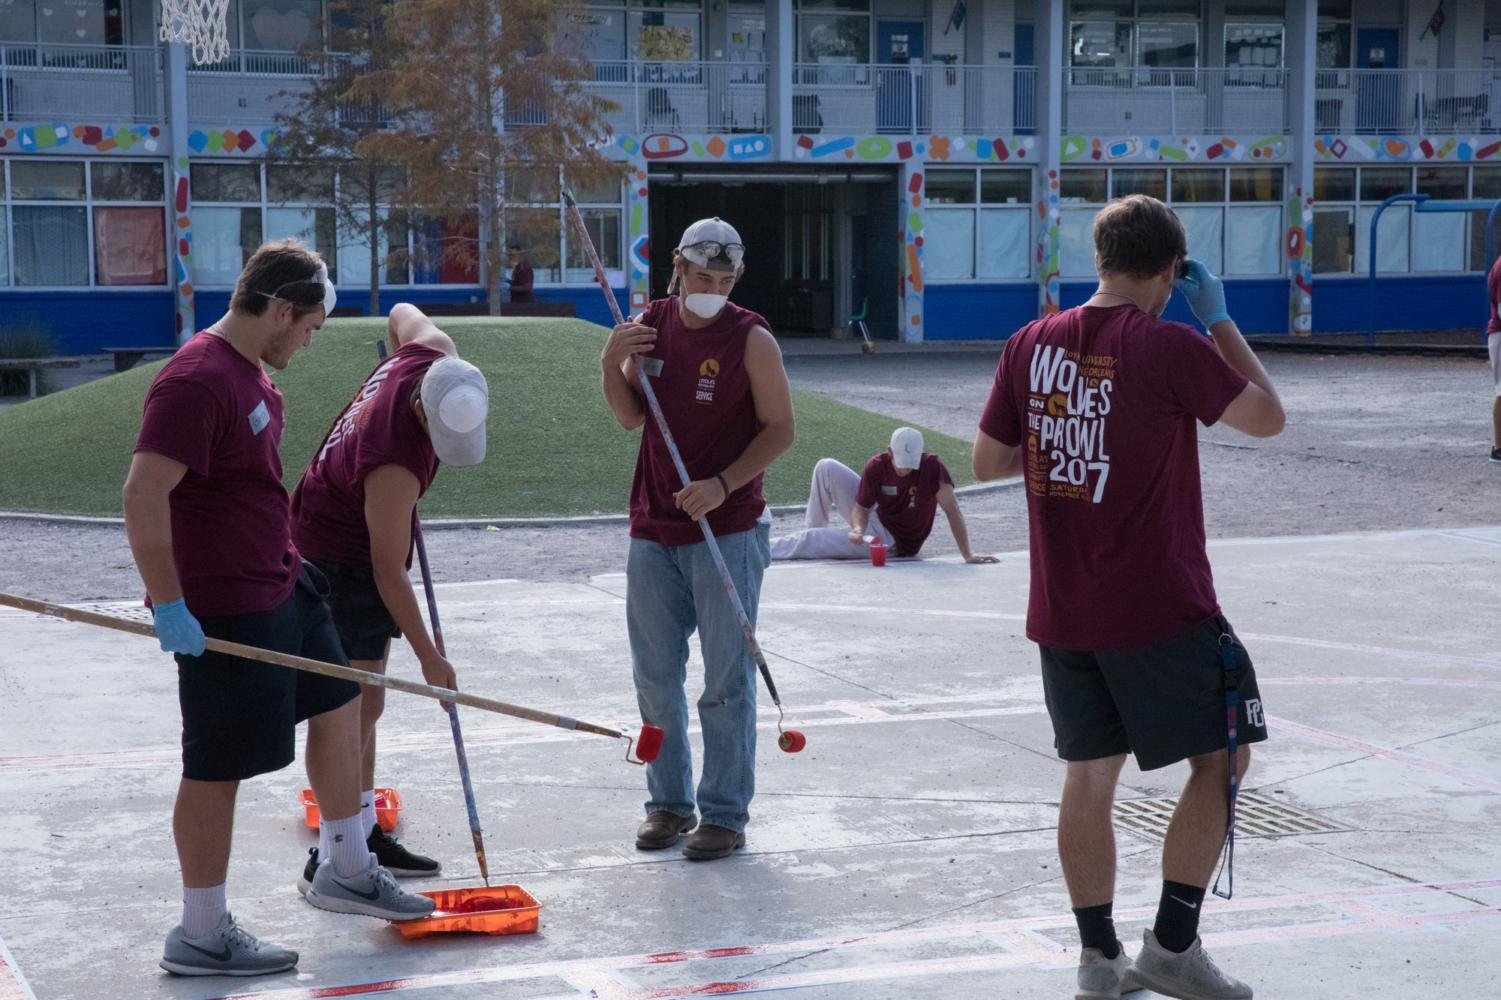 Loyola baseball team helps out at Loyola's National Day of Community Service, Wolves on the Prowl, Nov. 4th. Photo by Lili Mae Kinney.